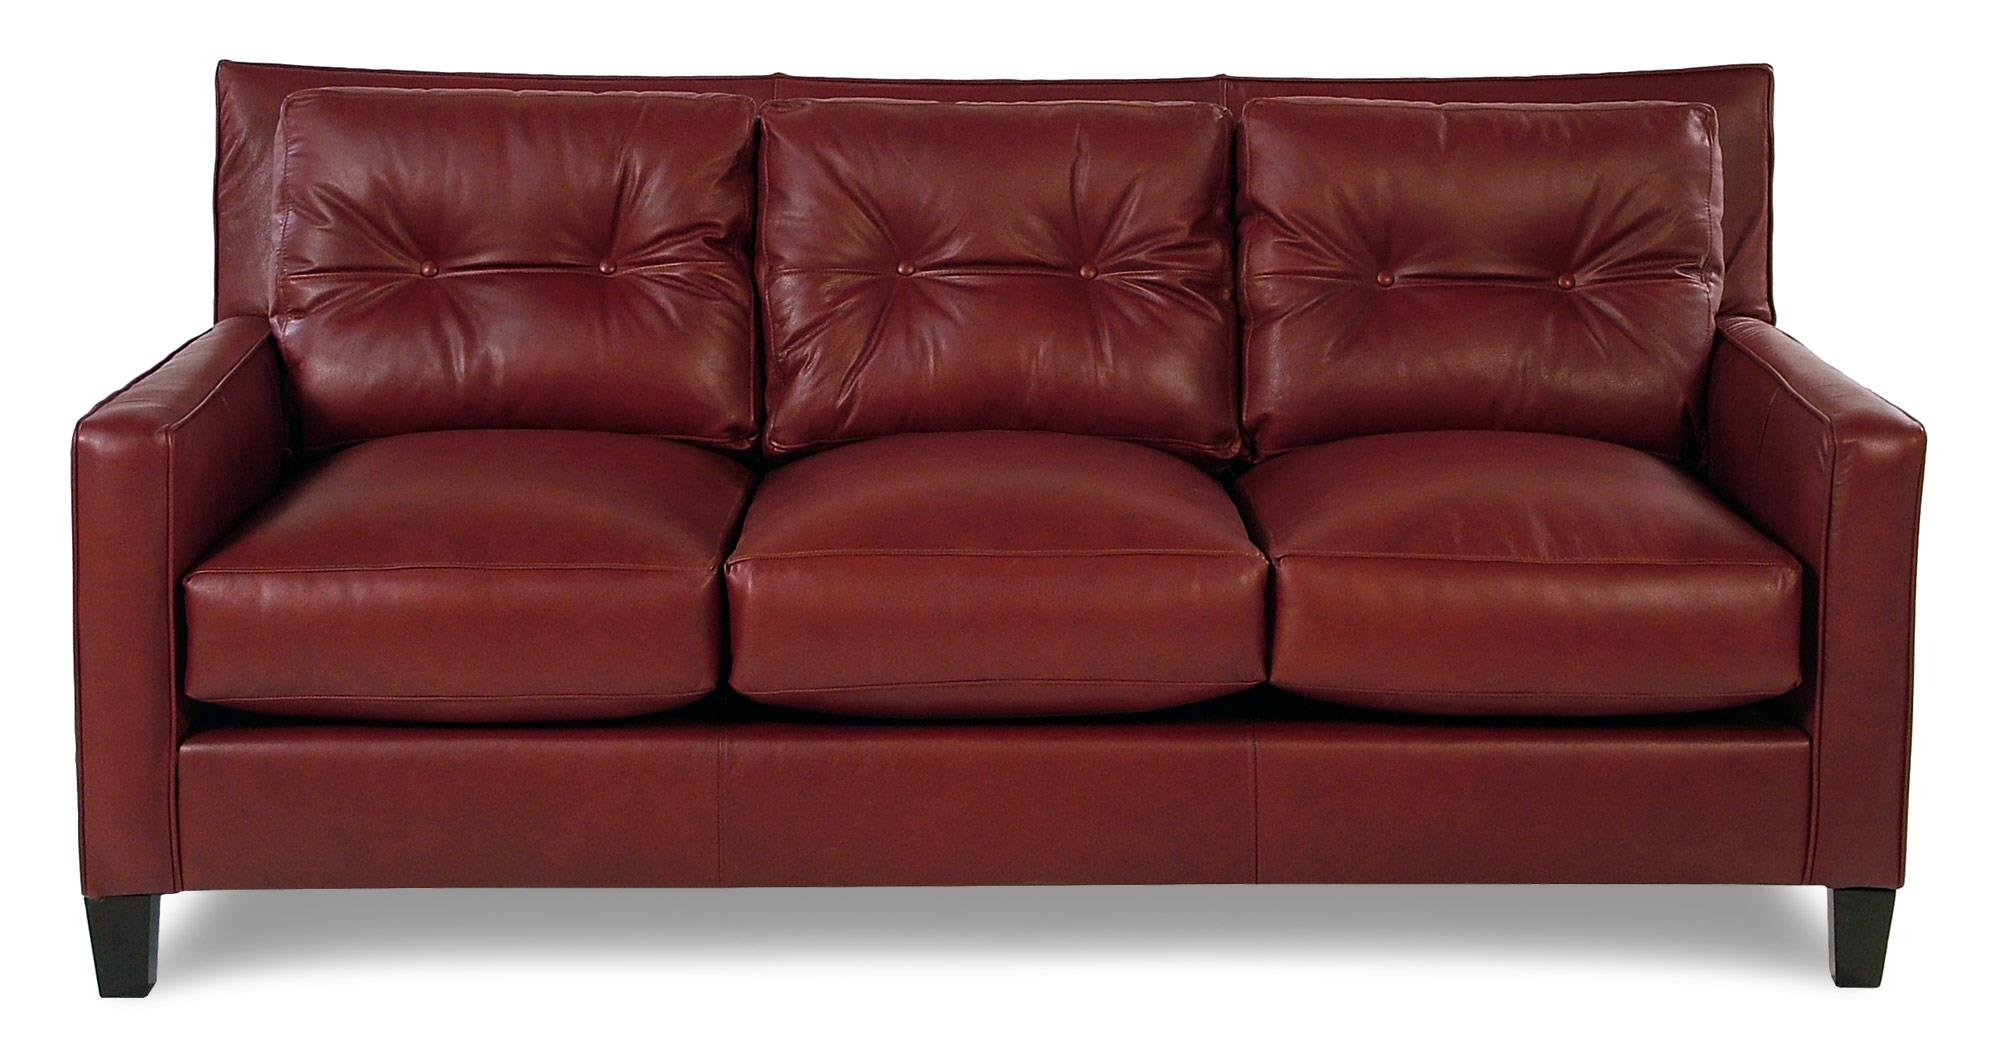 Broyhill Furniture Affinity Contemporary Leather Sofa  - Item Number: L6018-3-0016-67